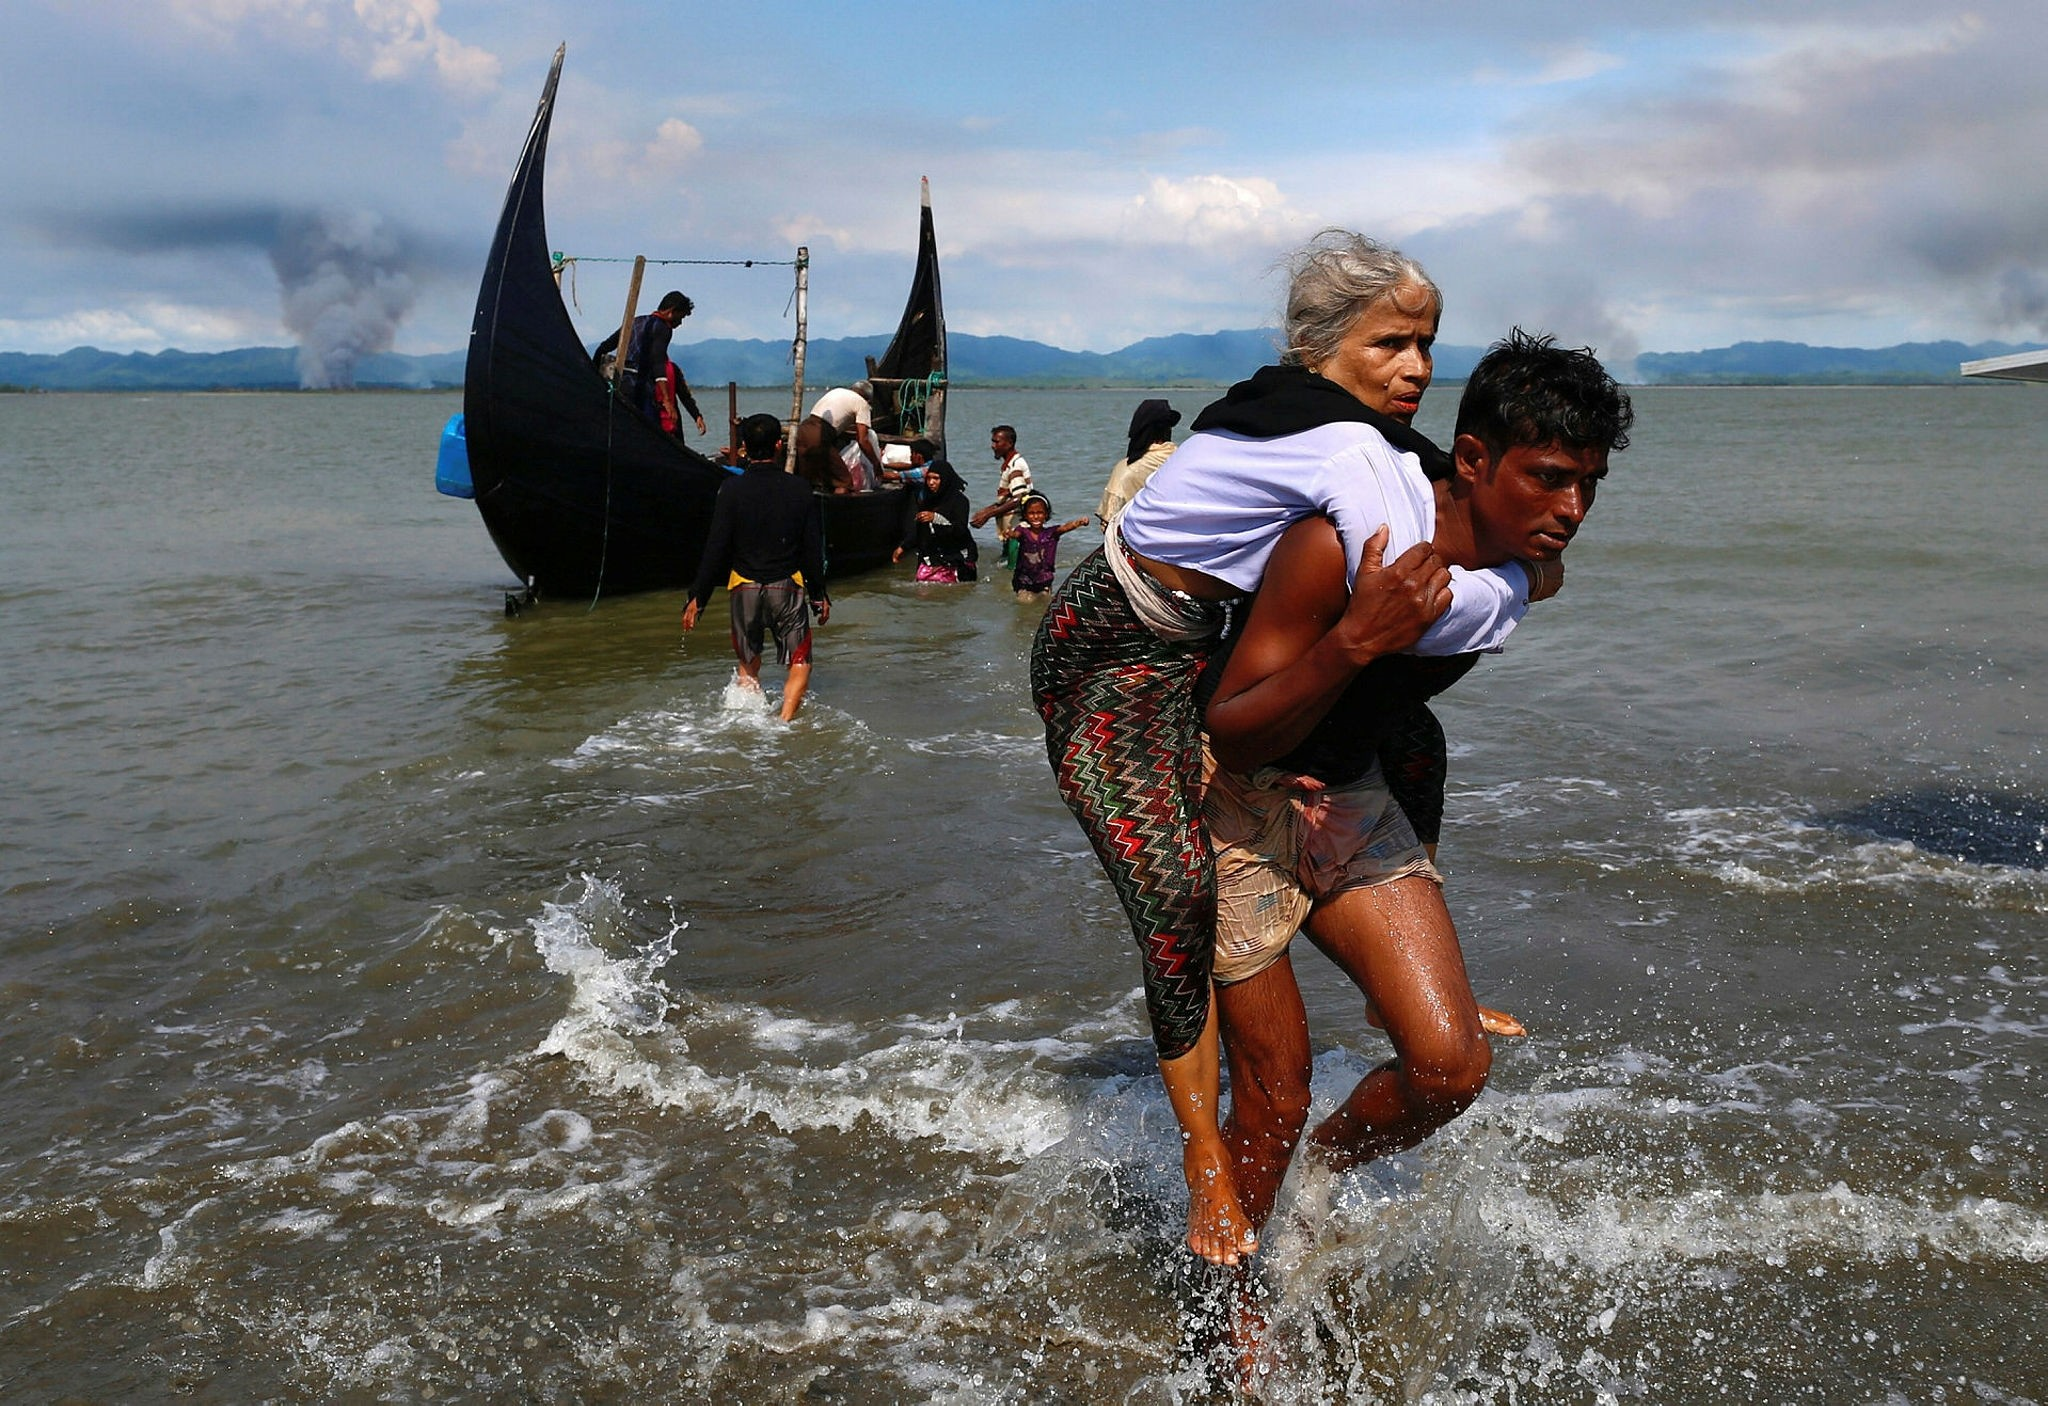 Smoke rises on Myanmar's side of border as an old Rohingya refugee woman is carried after crossing the Bangladesh-Myanmar border by boat through the Bay of Bengal, Sept. 15.